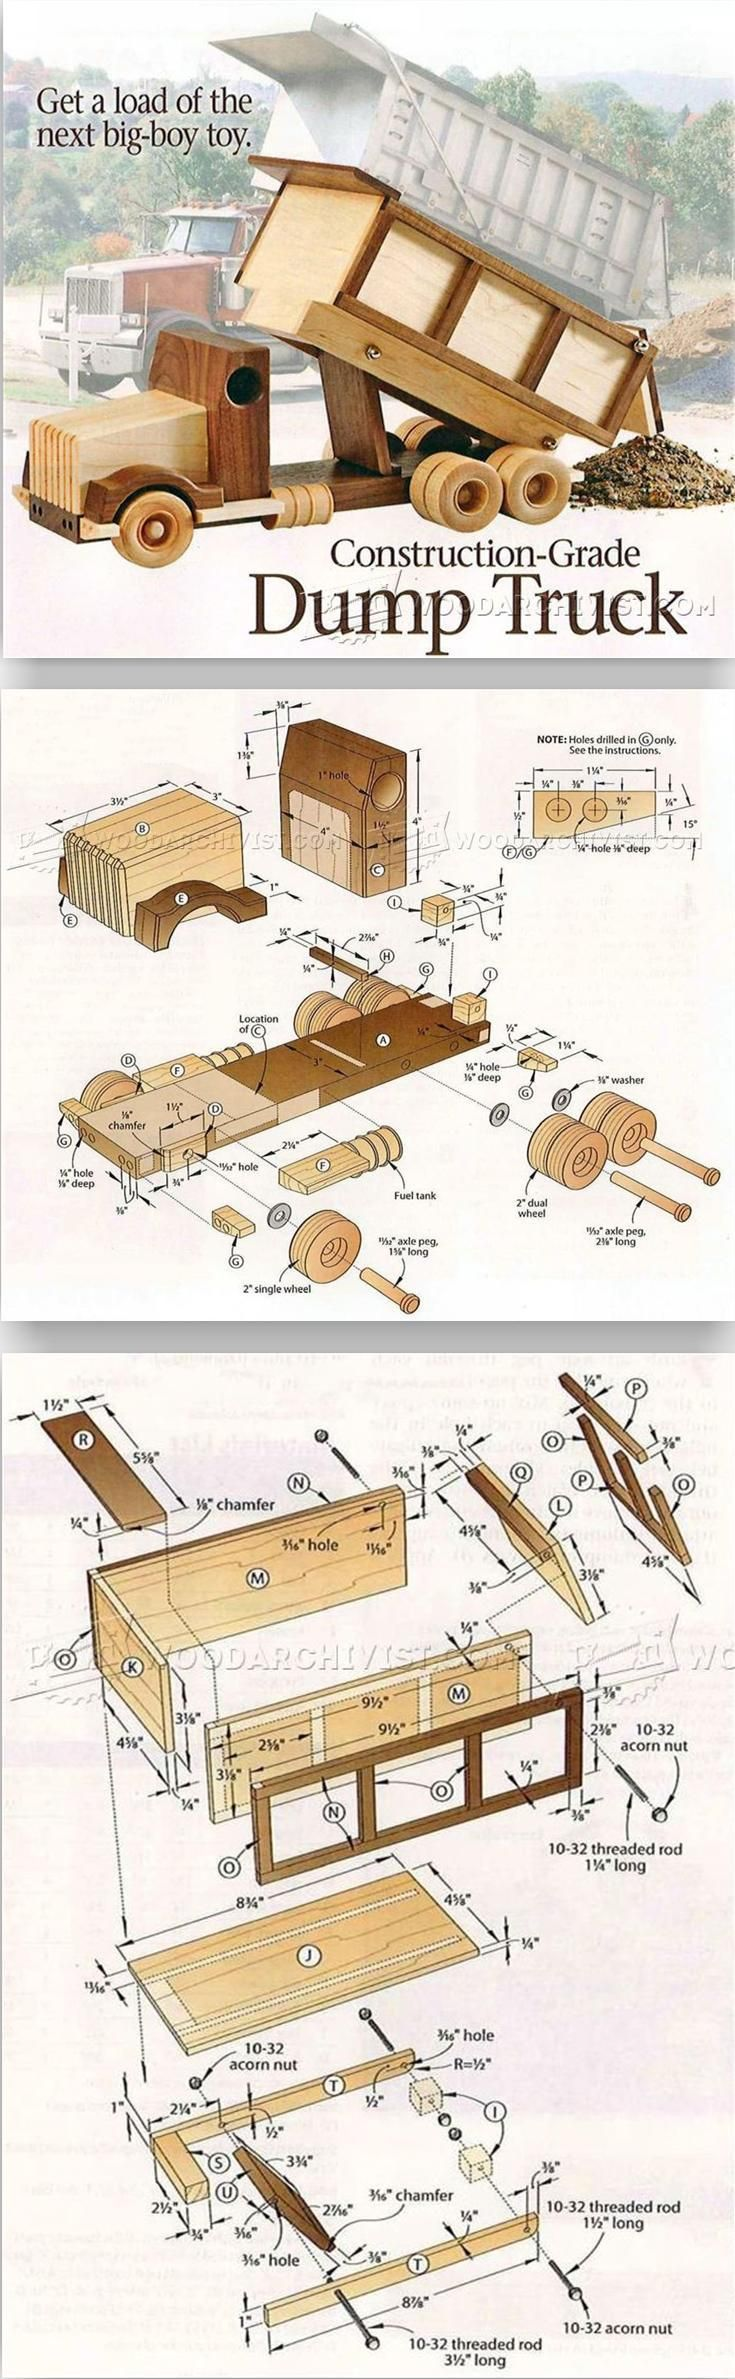 Wooden Truck Plans - Children's Wooden Toy Plans and Projects | WoodArchivist.com